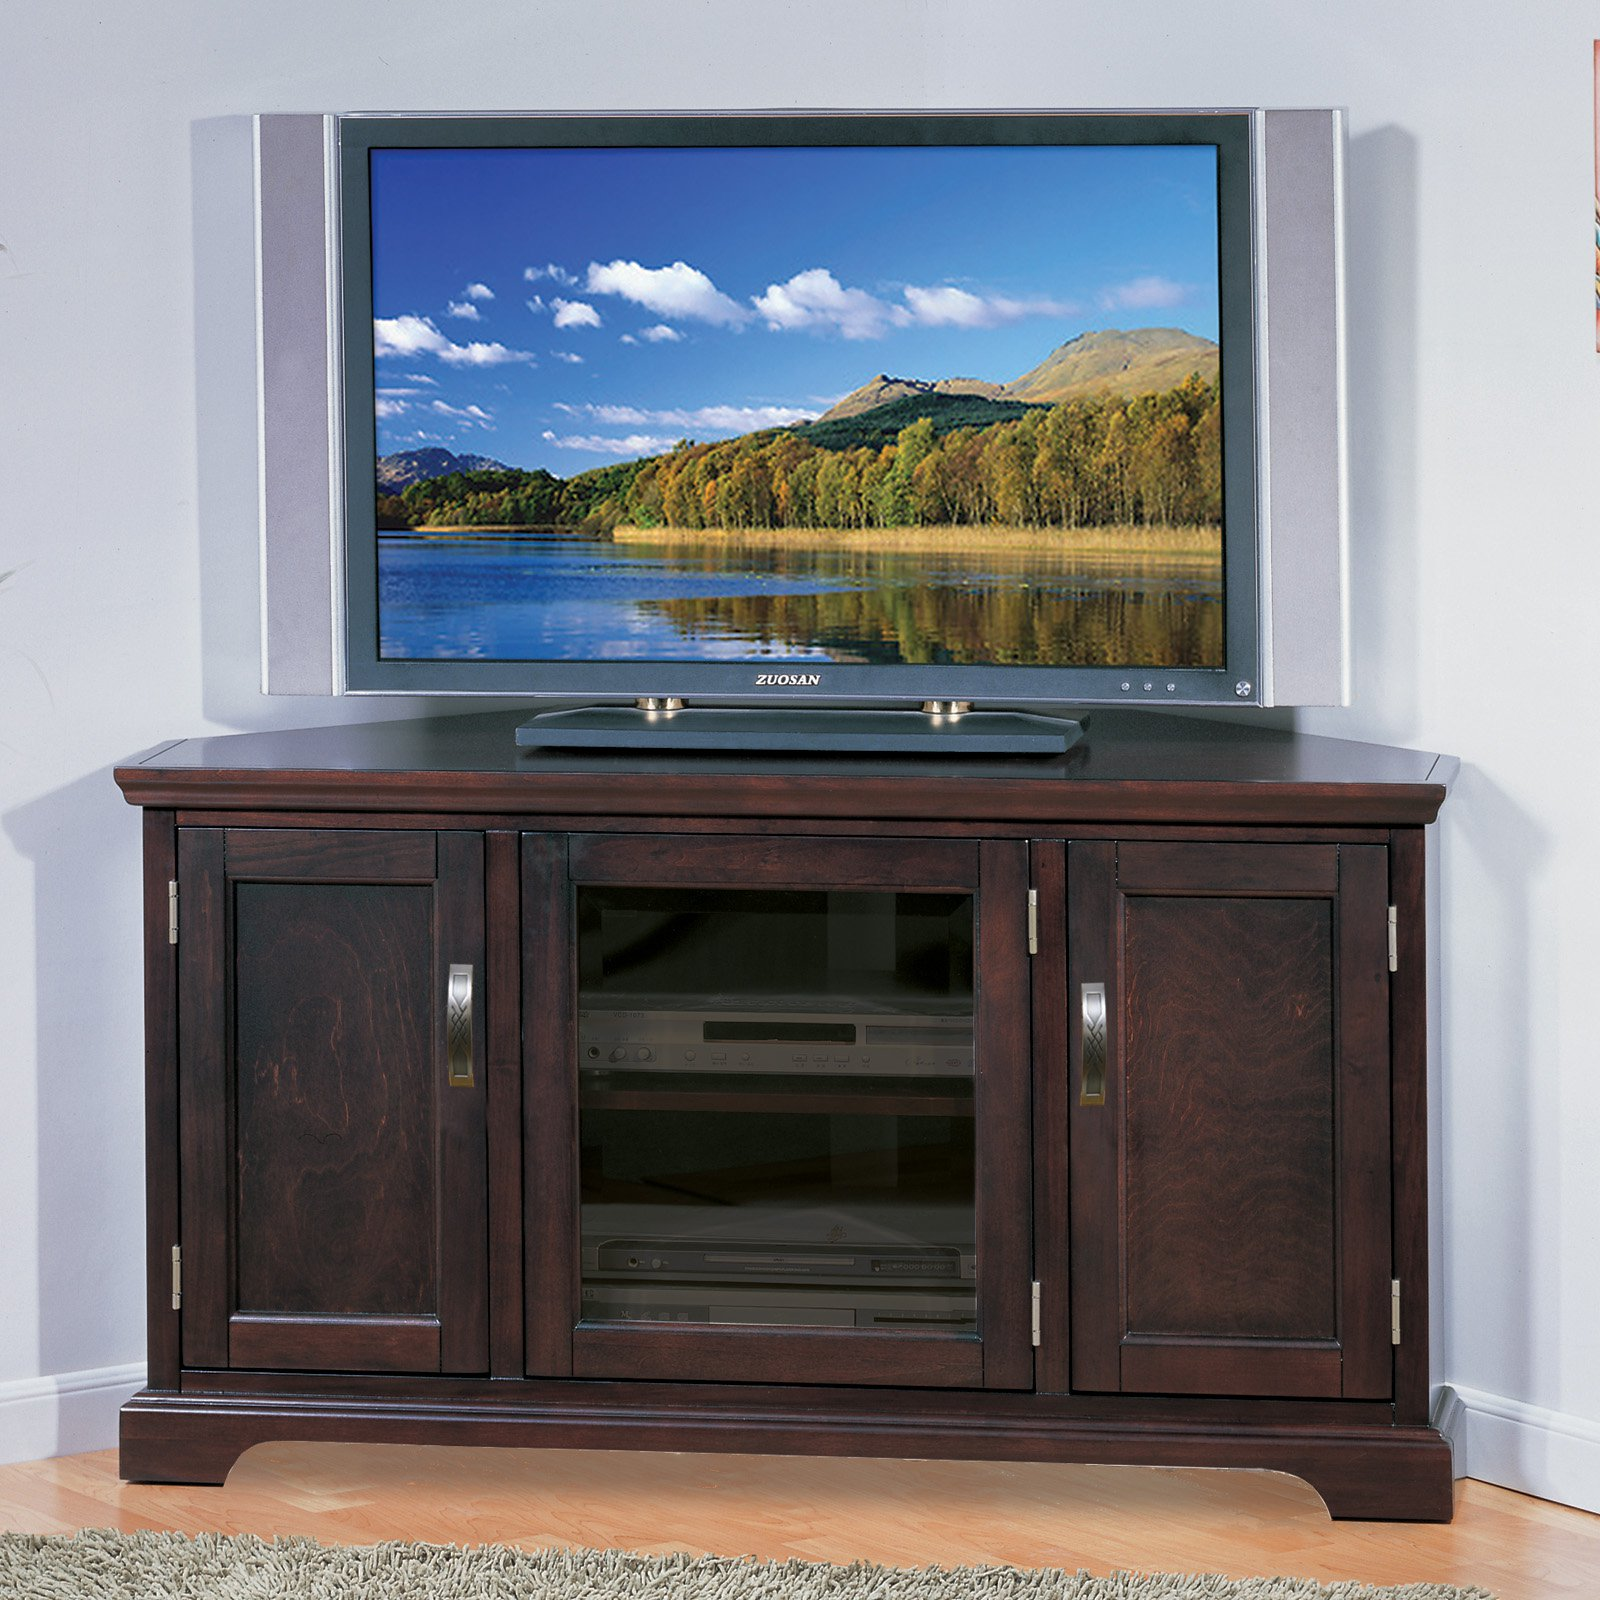 Leick 81385 Riley Holliday Chocolate 46 in Corner TV Console with